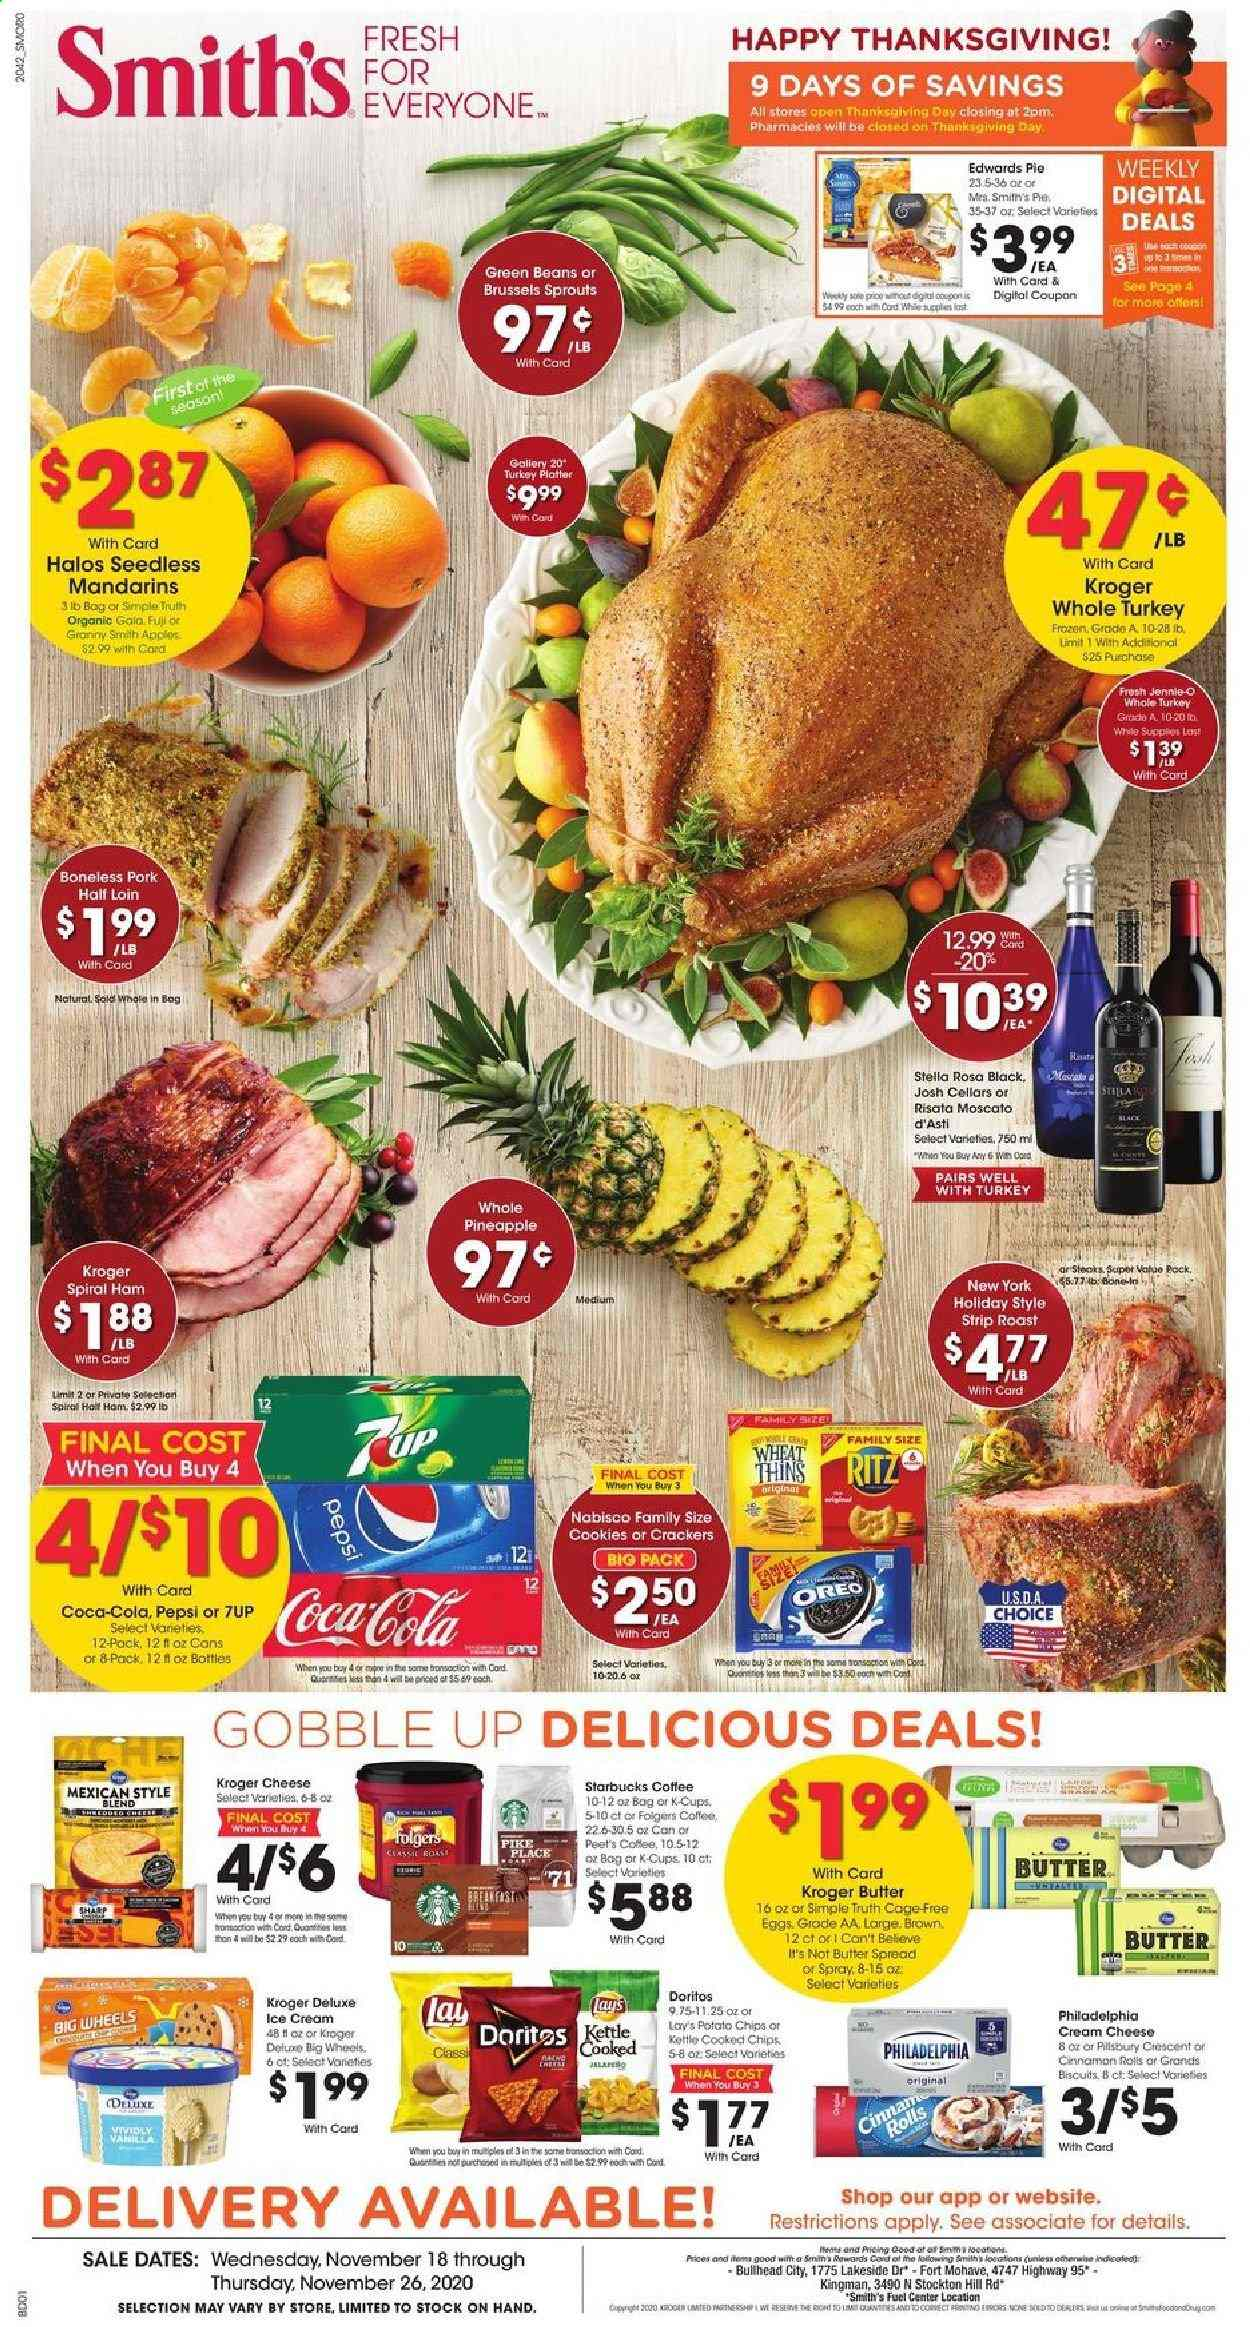 Smith's Flyer - 11.18.2020 - 11.26.2020 - Sales products - apples, beans, biscuits, brussels sprouts, butter, cinnamon rolls, coca-cola, coffee, cookies, cream cheese, Doritos, eggs, frozen, fuel, green beans, Sharp, starbucks, turkey, whole turkey, ham, ice cream, philadelphia, pike, pineapple, pork meat, potato chips, Pepsi, Oreo, chips, cheese, pie, Lay's, platter, spiral ham, Folgers, Apple, kettle. Page 1.